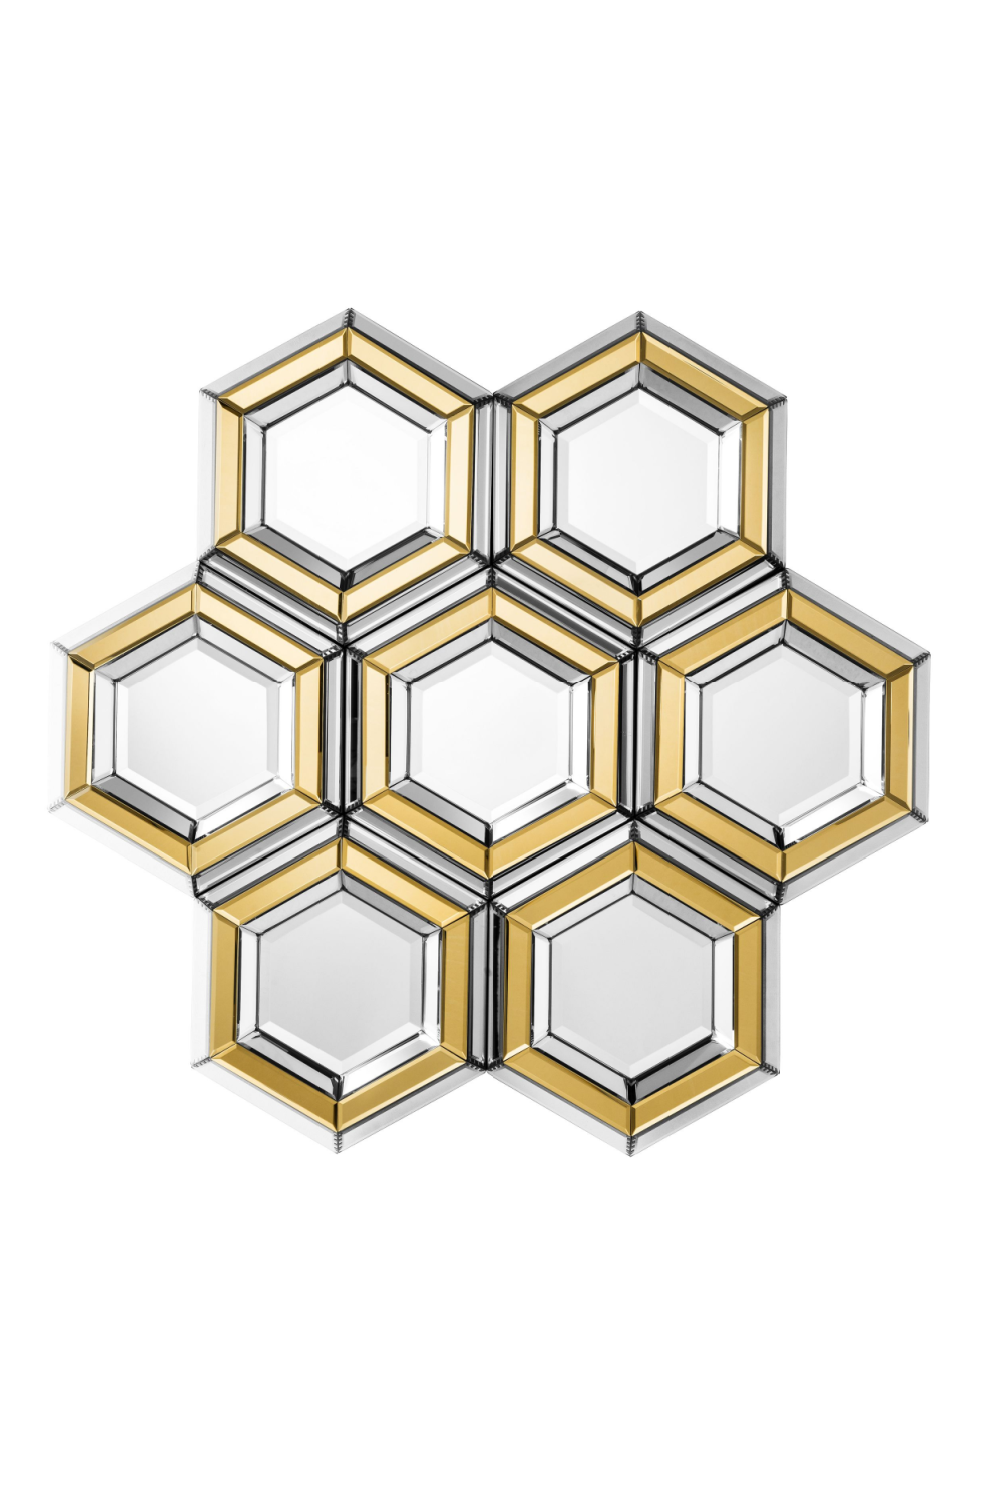 Two-tone Honeycomb Cluster Mirror | Eichholtz Dunello